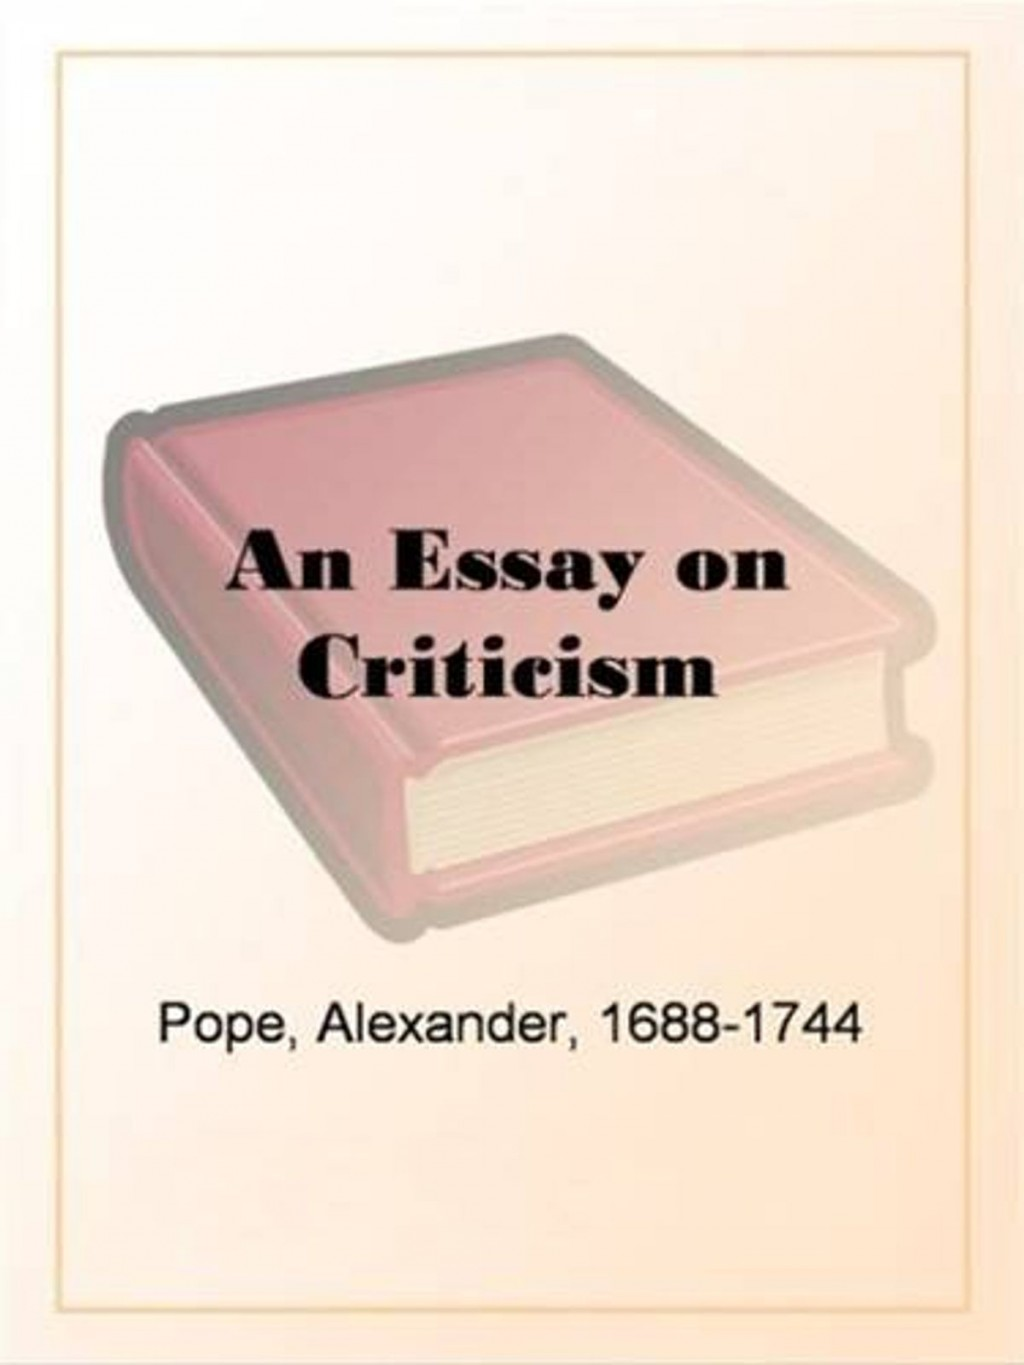 008 An Essay On Criticism Sensational Lines 233 To 415 Part 3 Analysis Pdf Large